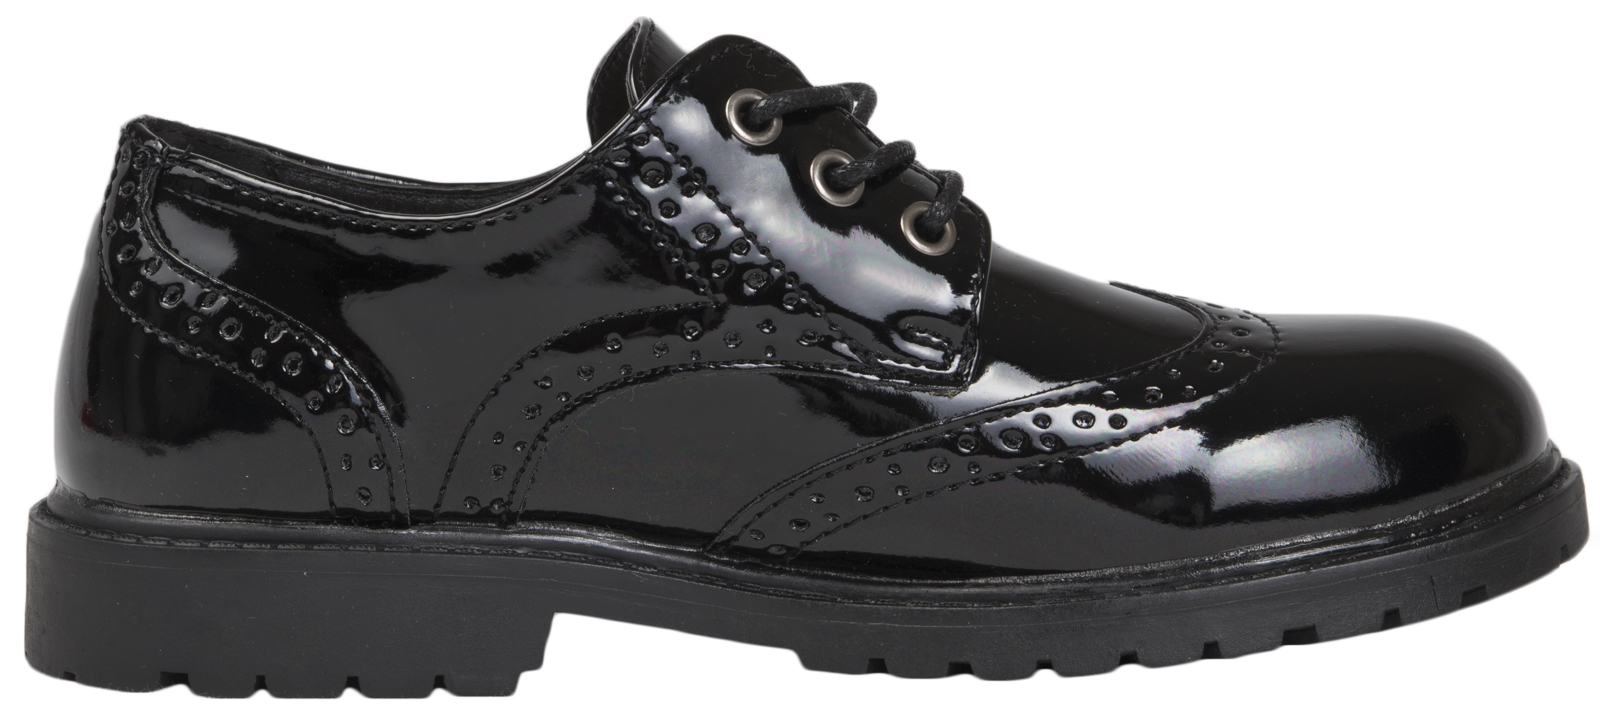 Free shipping BOTH ways on black patent brogues women, from our vast selection of styles. Fast delivery, and 24/7/ real-person service with a smile. Click or call